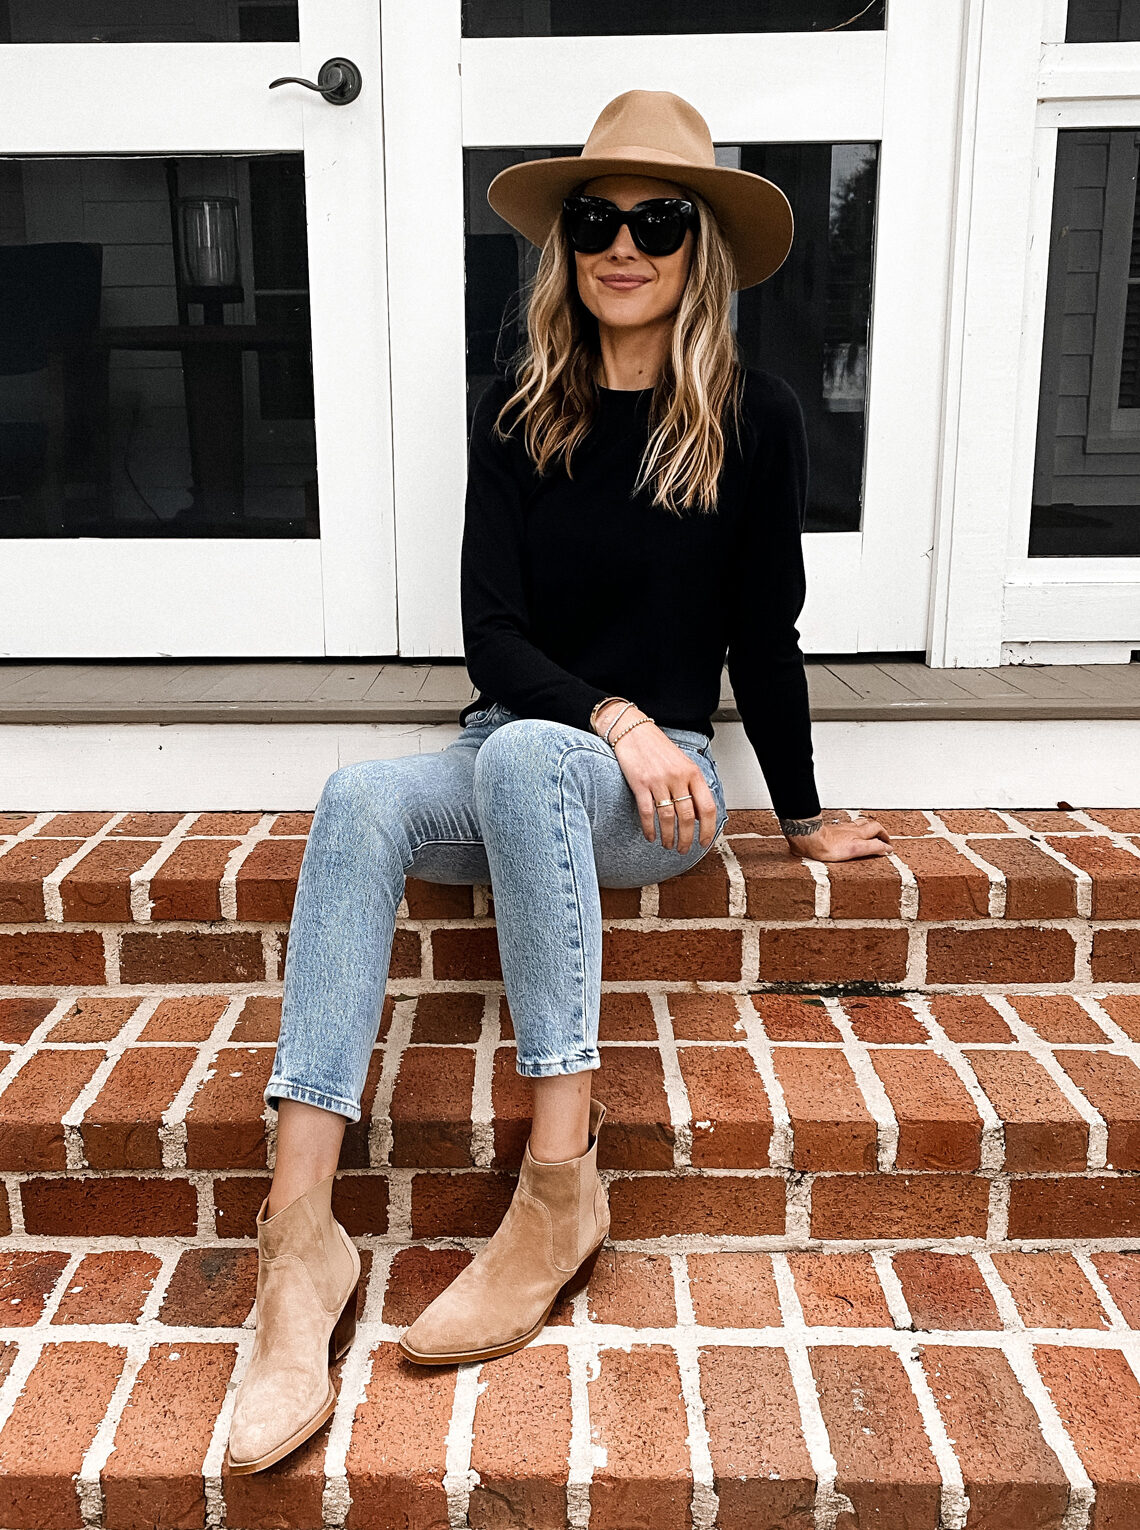 Fashion Jackson Wearing Tan Wide Brim Wool Hat Black Sweater Levis Jeans Tan Suede Booties Fall Outfit